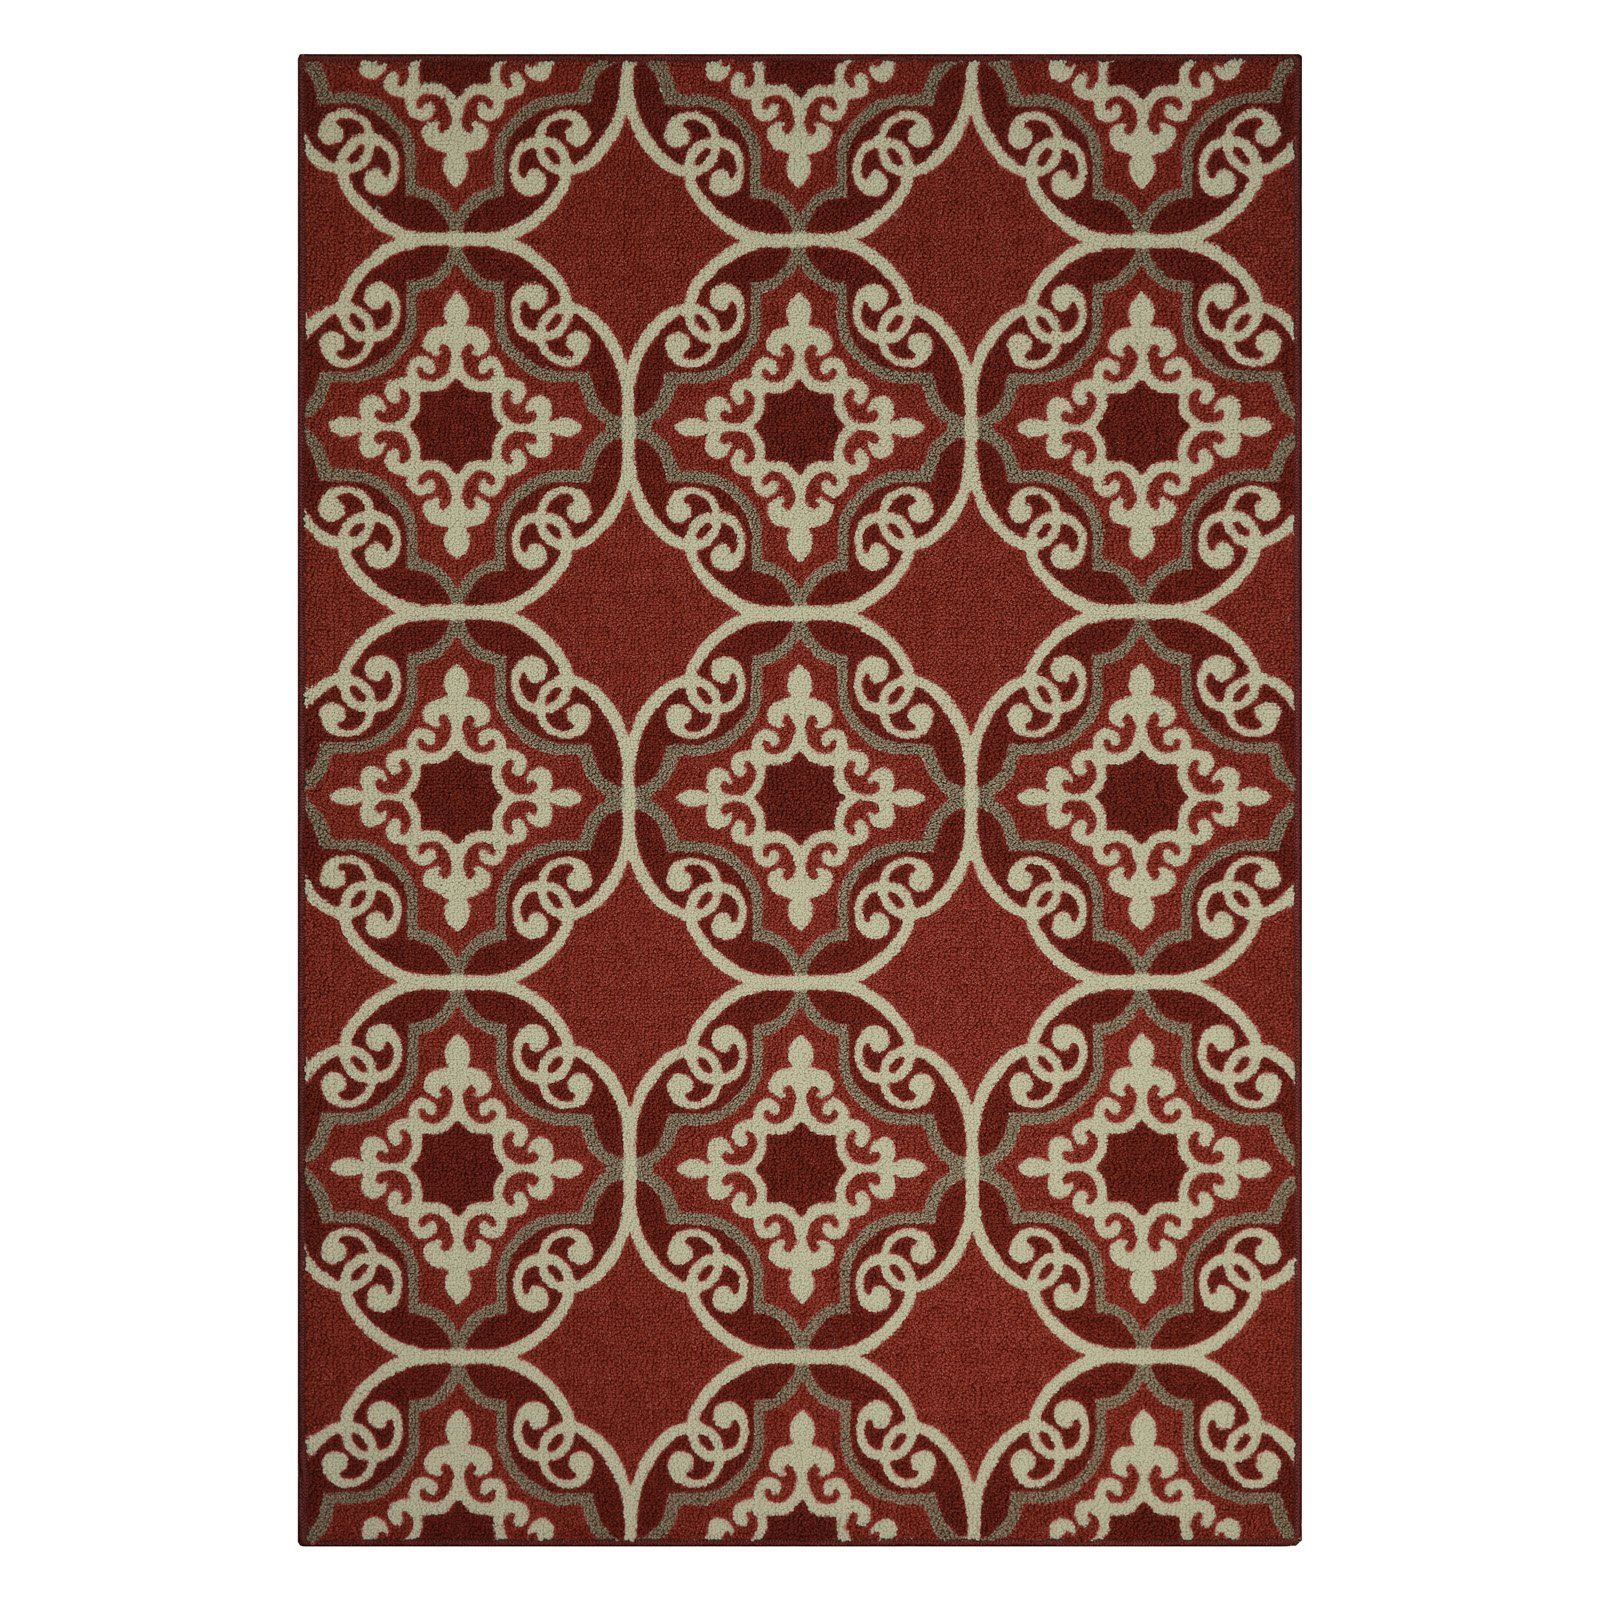 Better Homes and Gardens Medallion Kitchen Rug